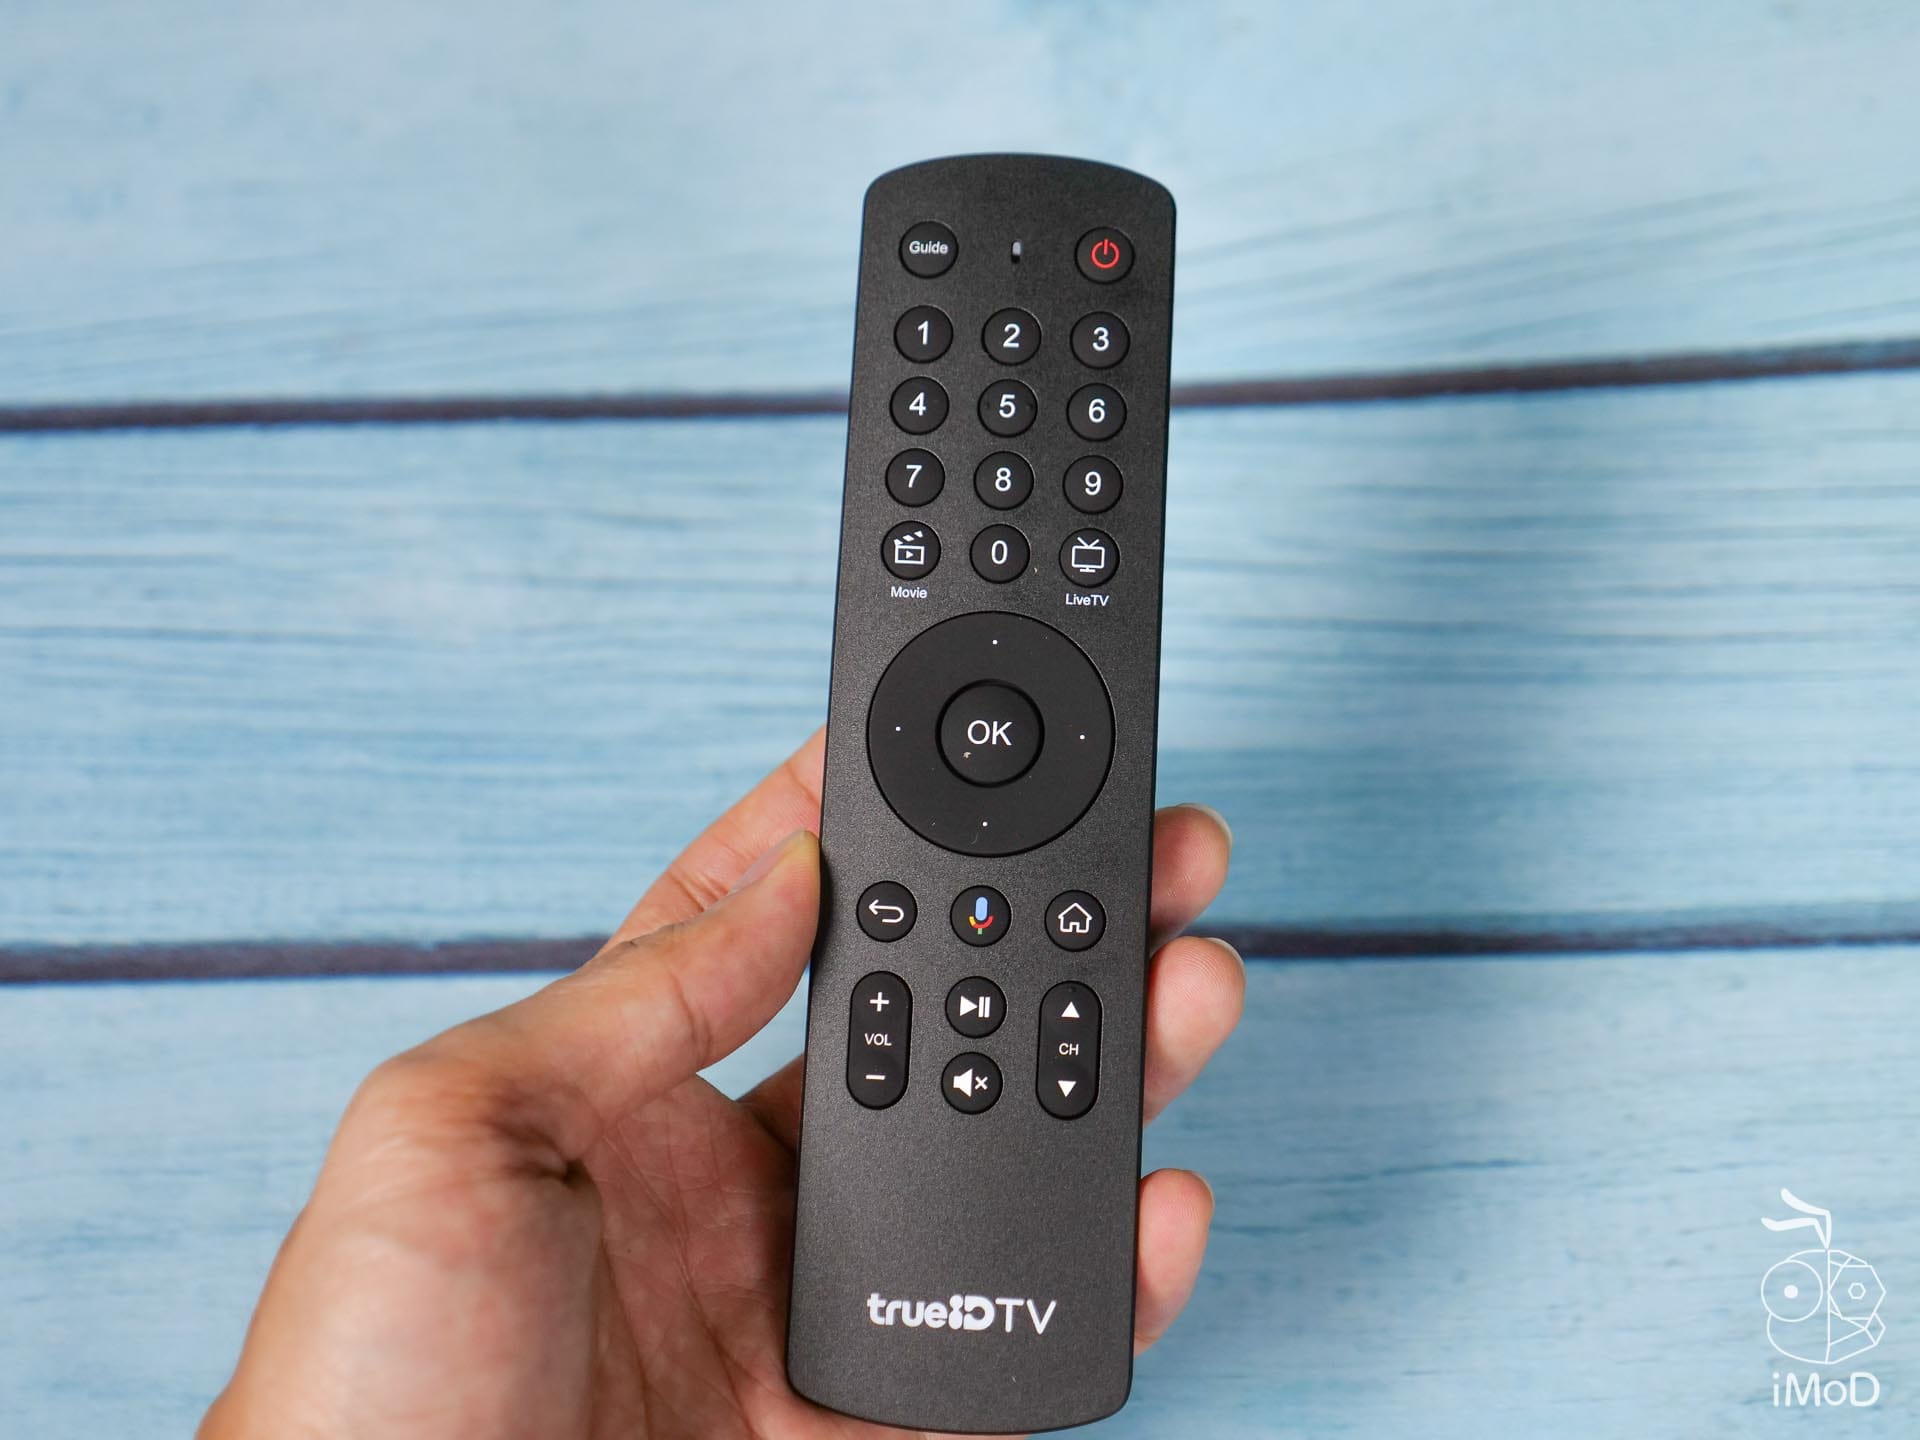 Trueid Tv กล่อง Android Tv รุ่น 2 Review 1222482